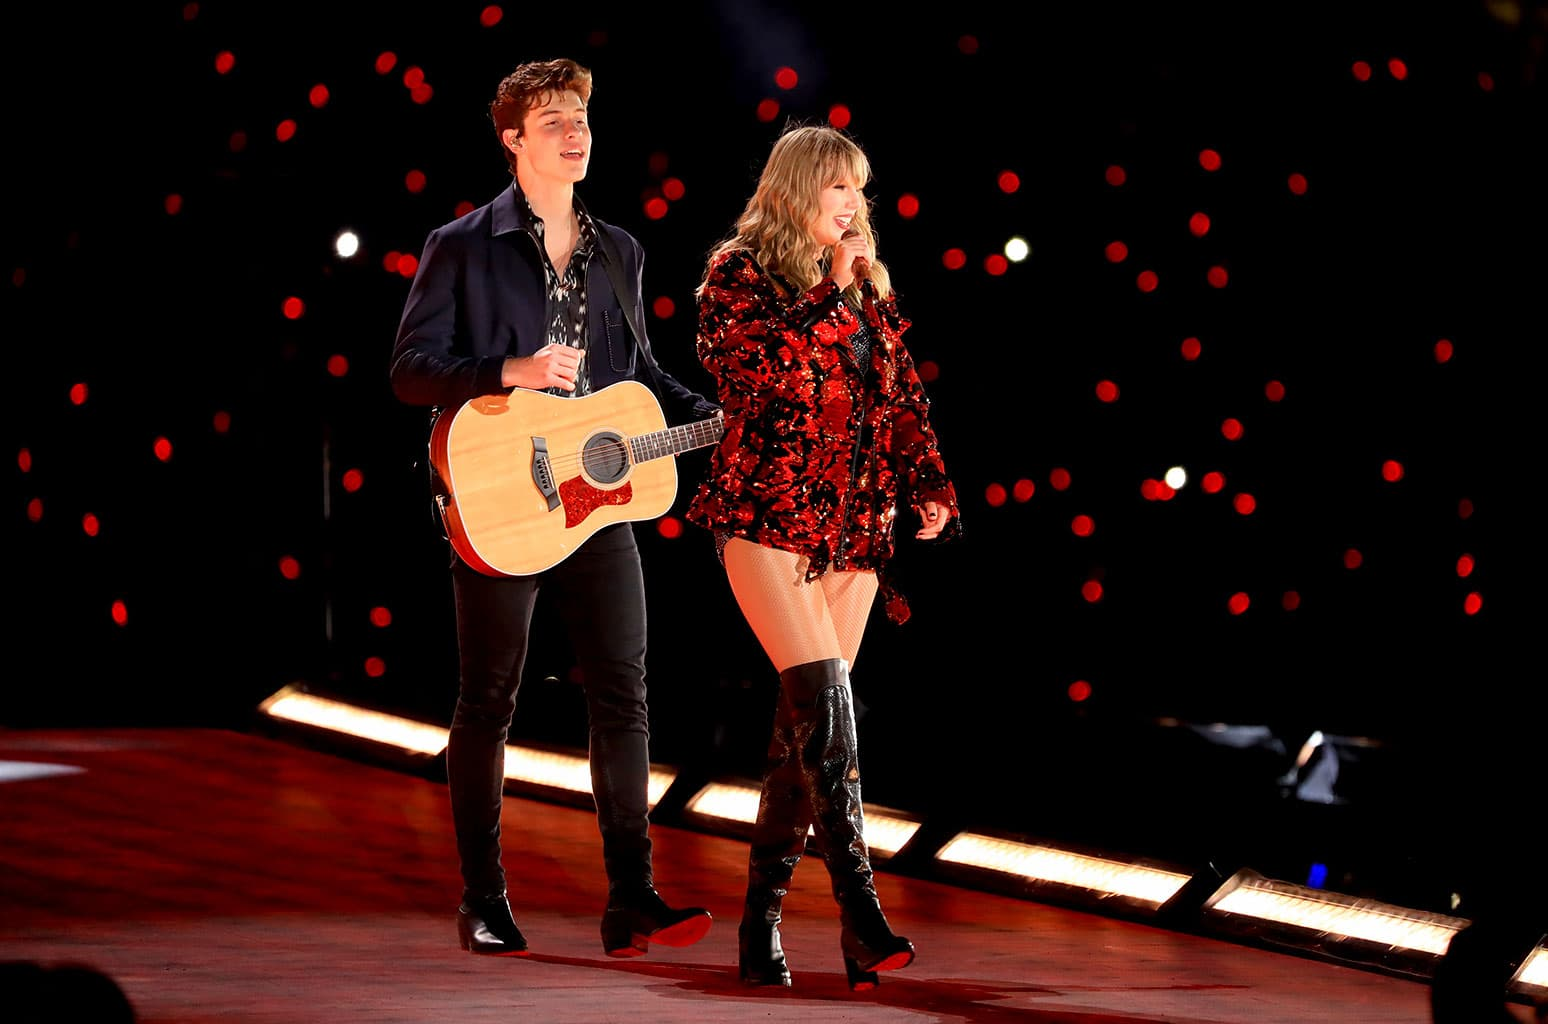 Taylor Swift Lover Remix Featuring Shawn Mendes